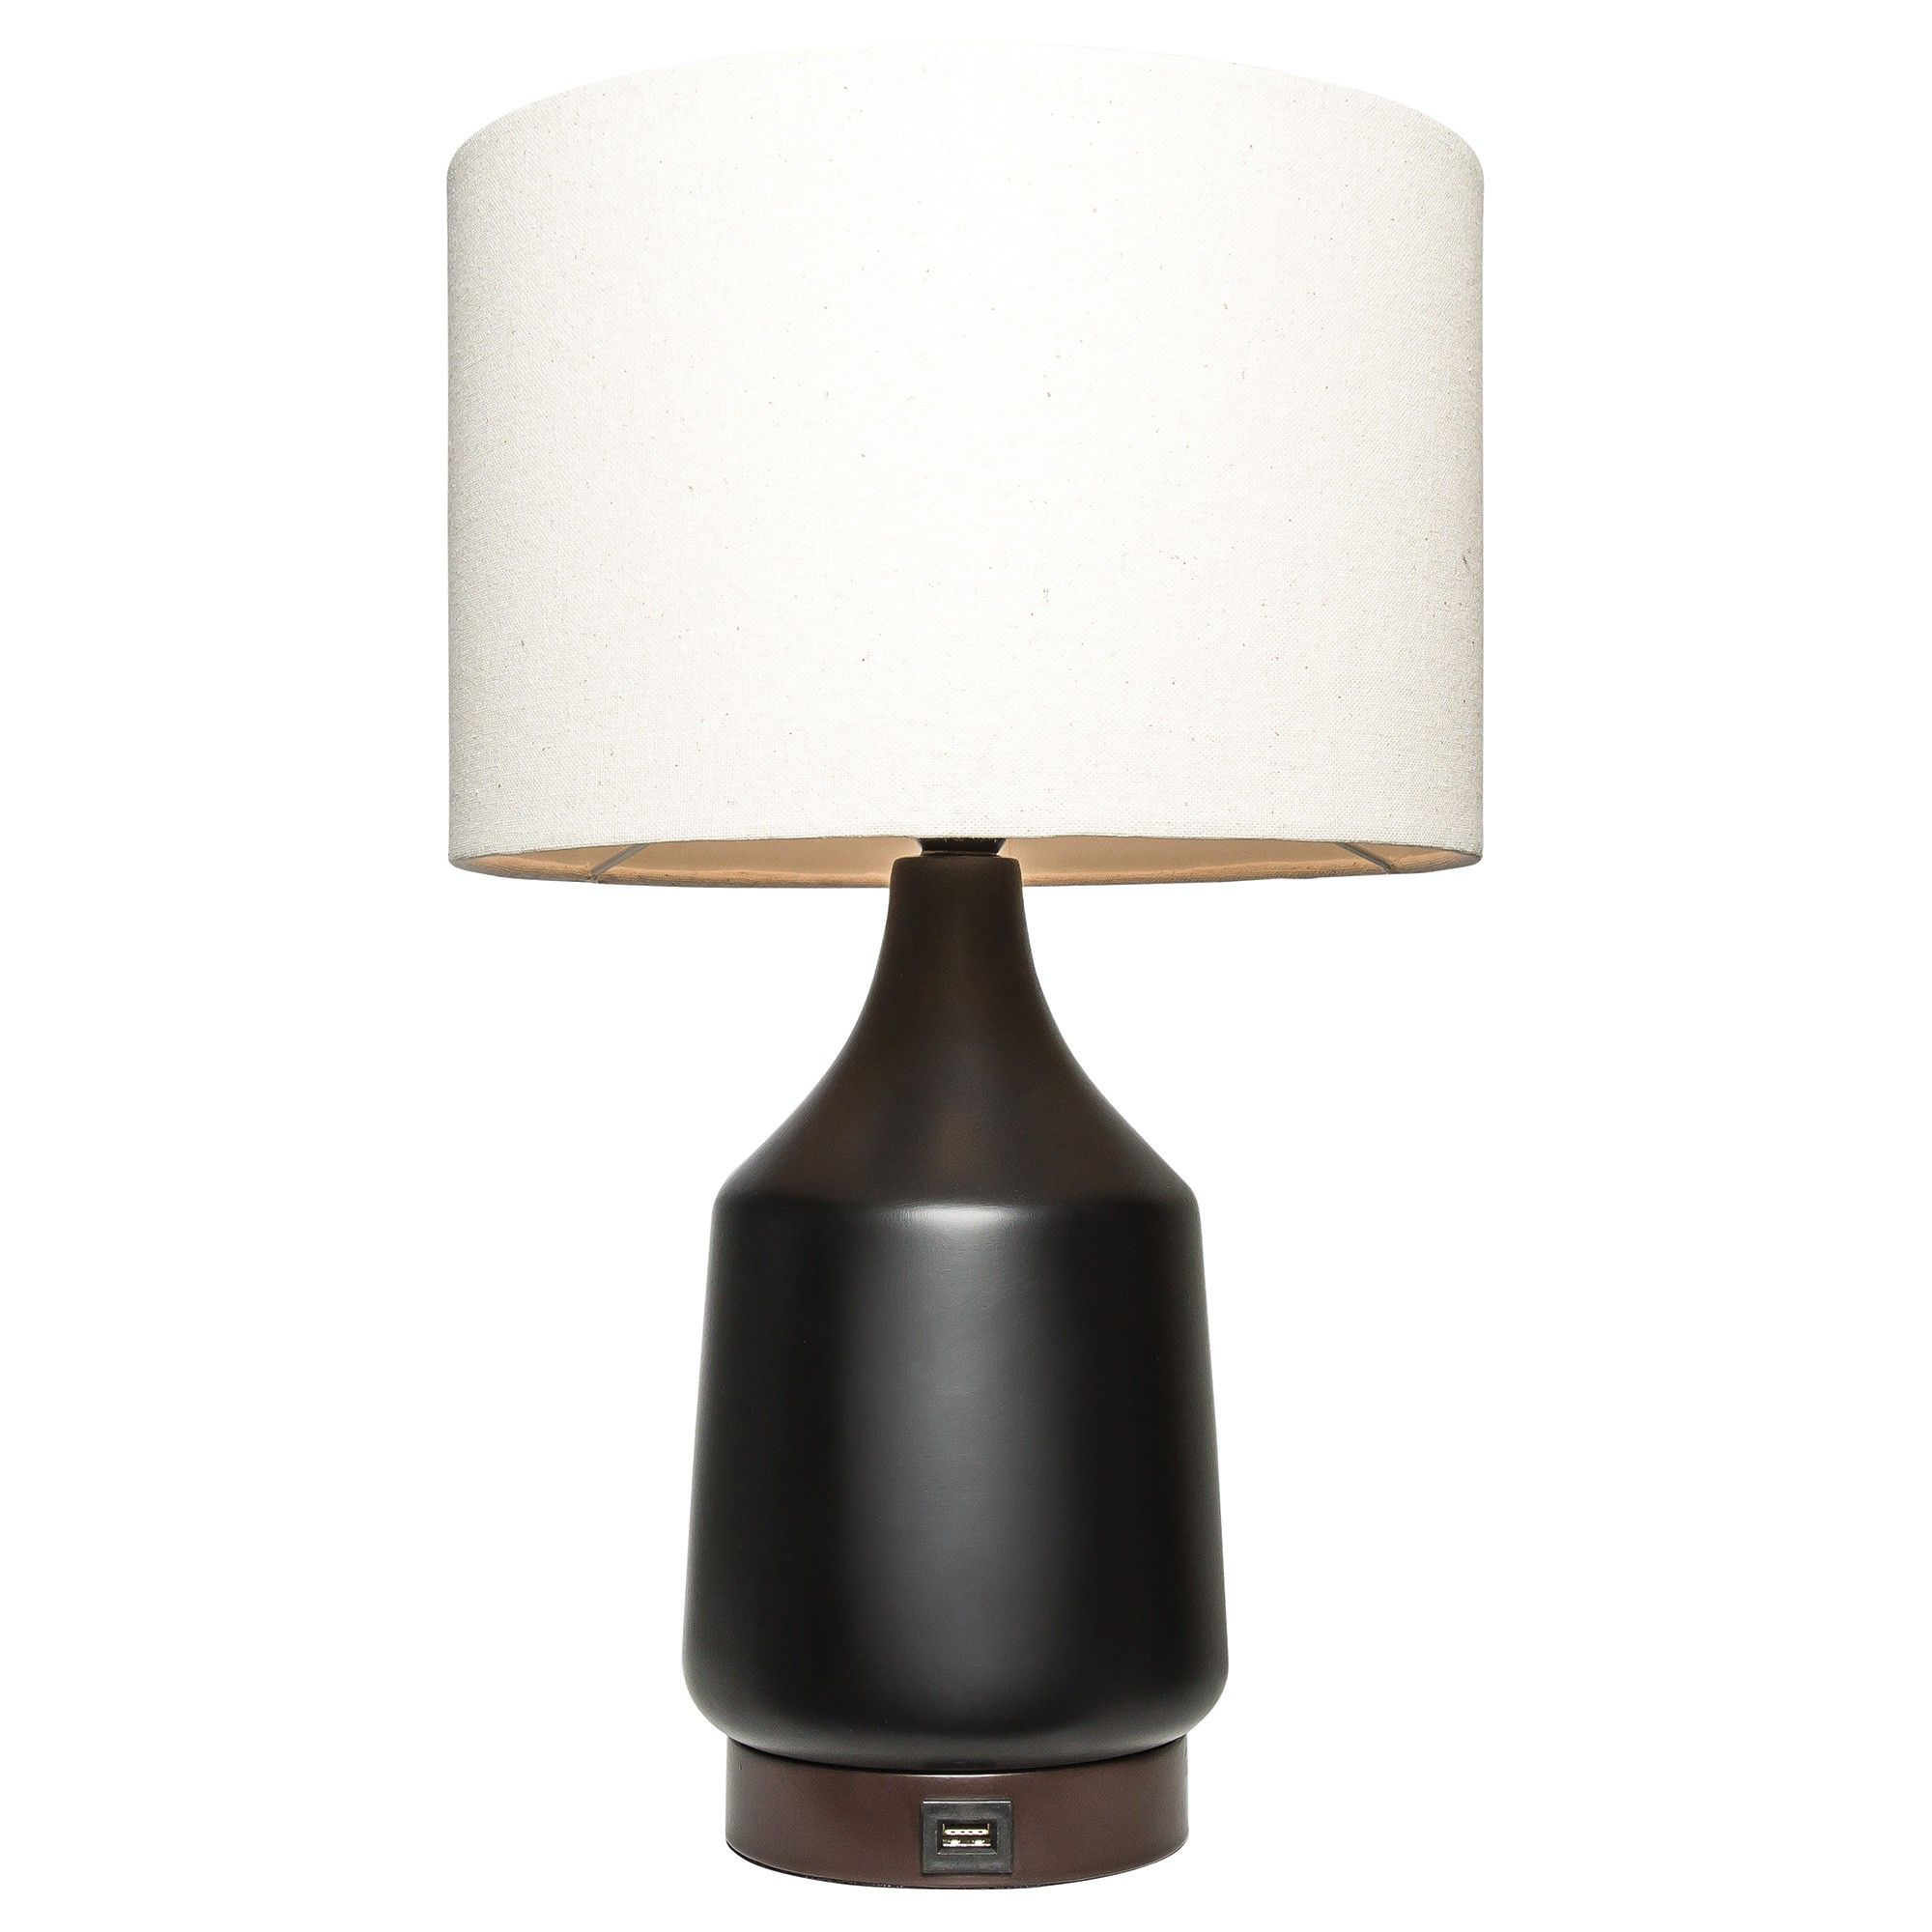 Santos Ceramic Table Lamp with USB Charger, Black